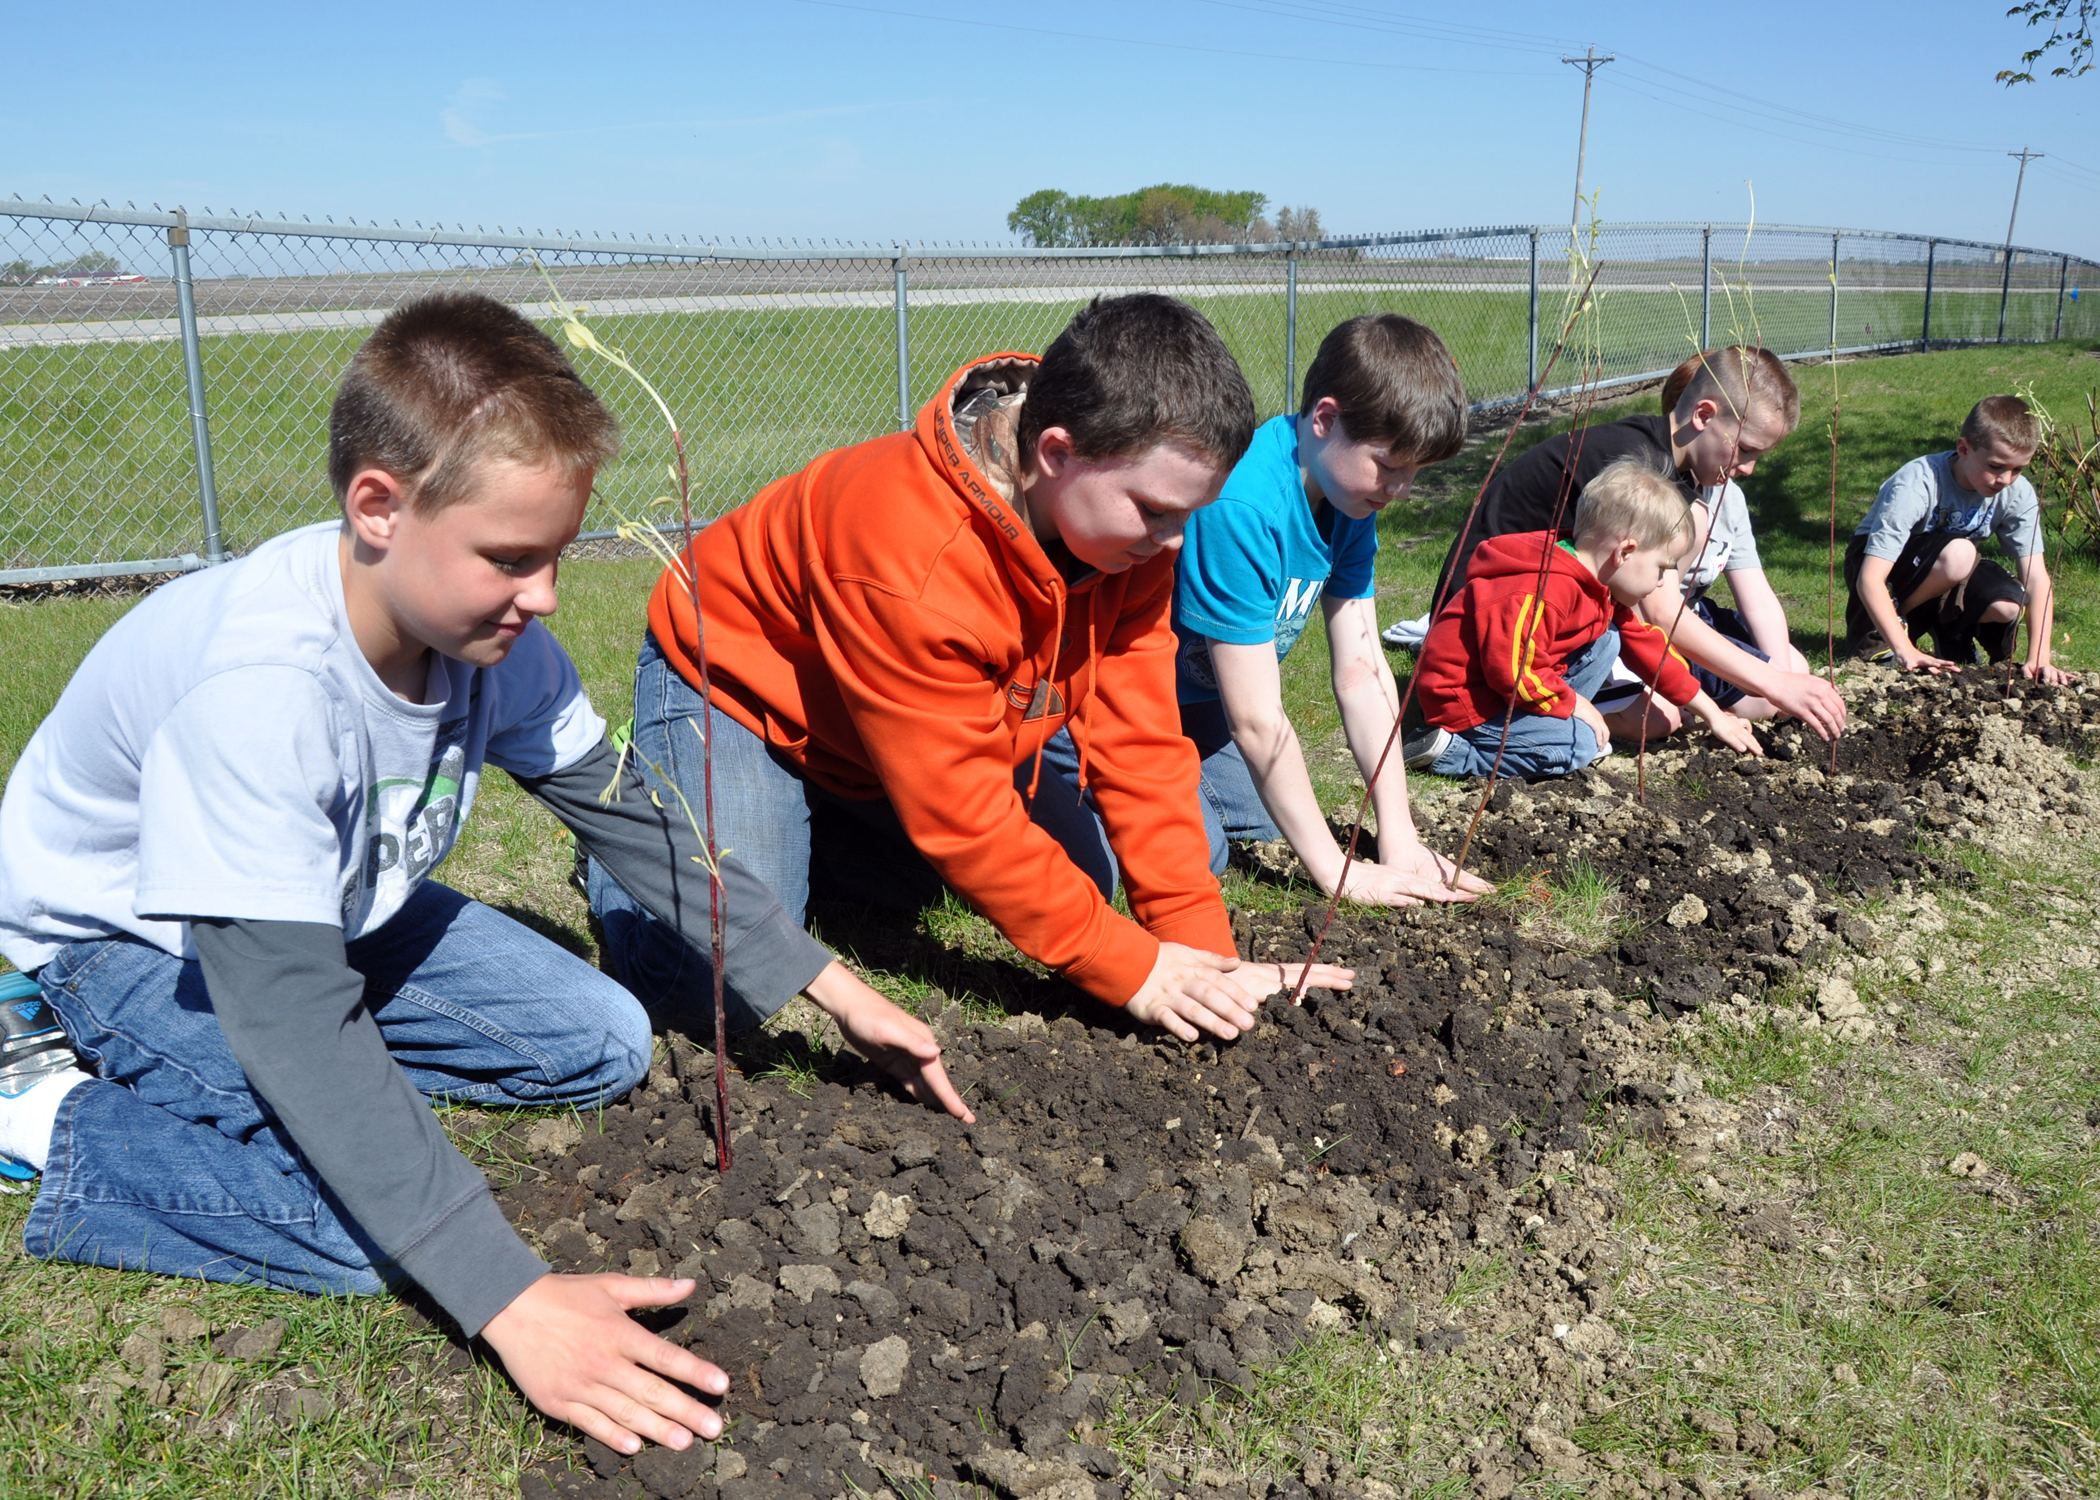 Fifth grade students from Prairie Valley School plant bushes as part of an Eath Day Project.